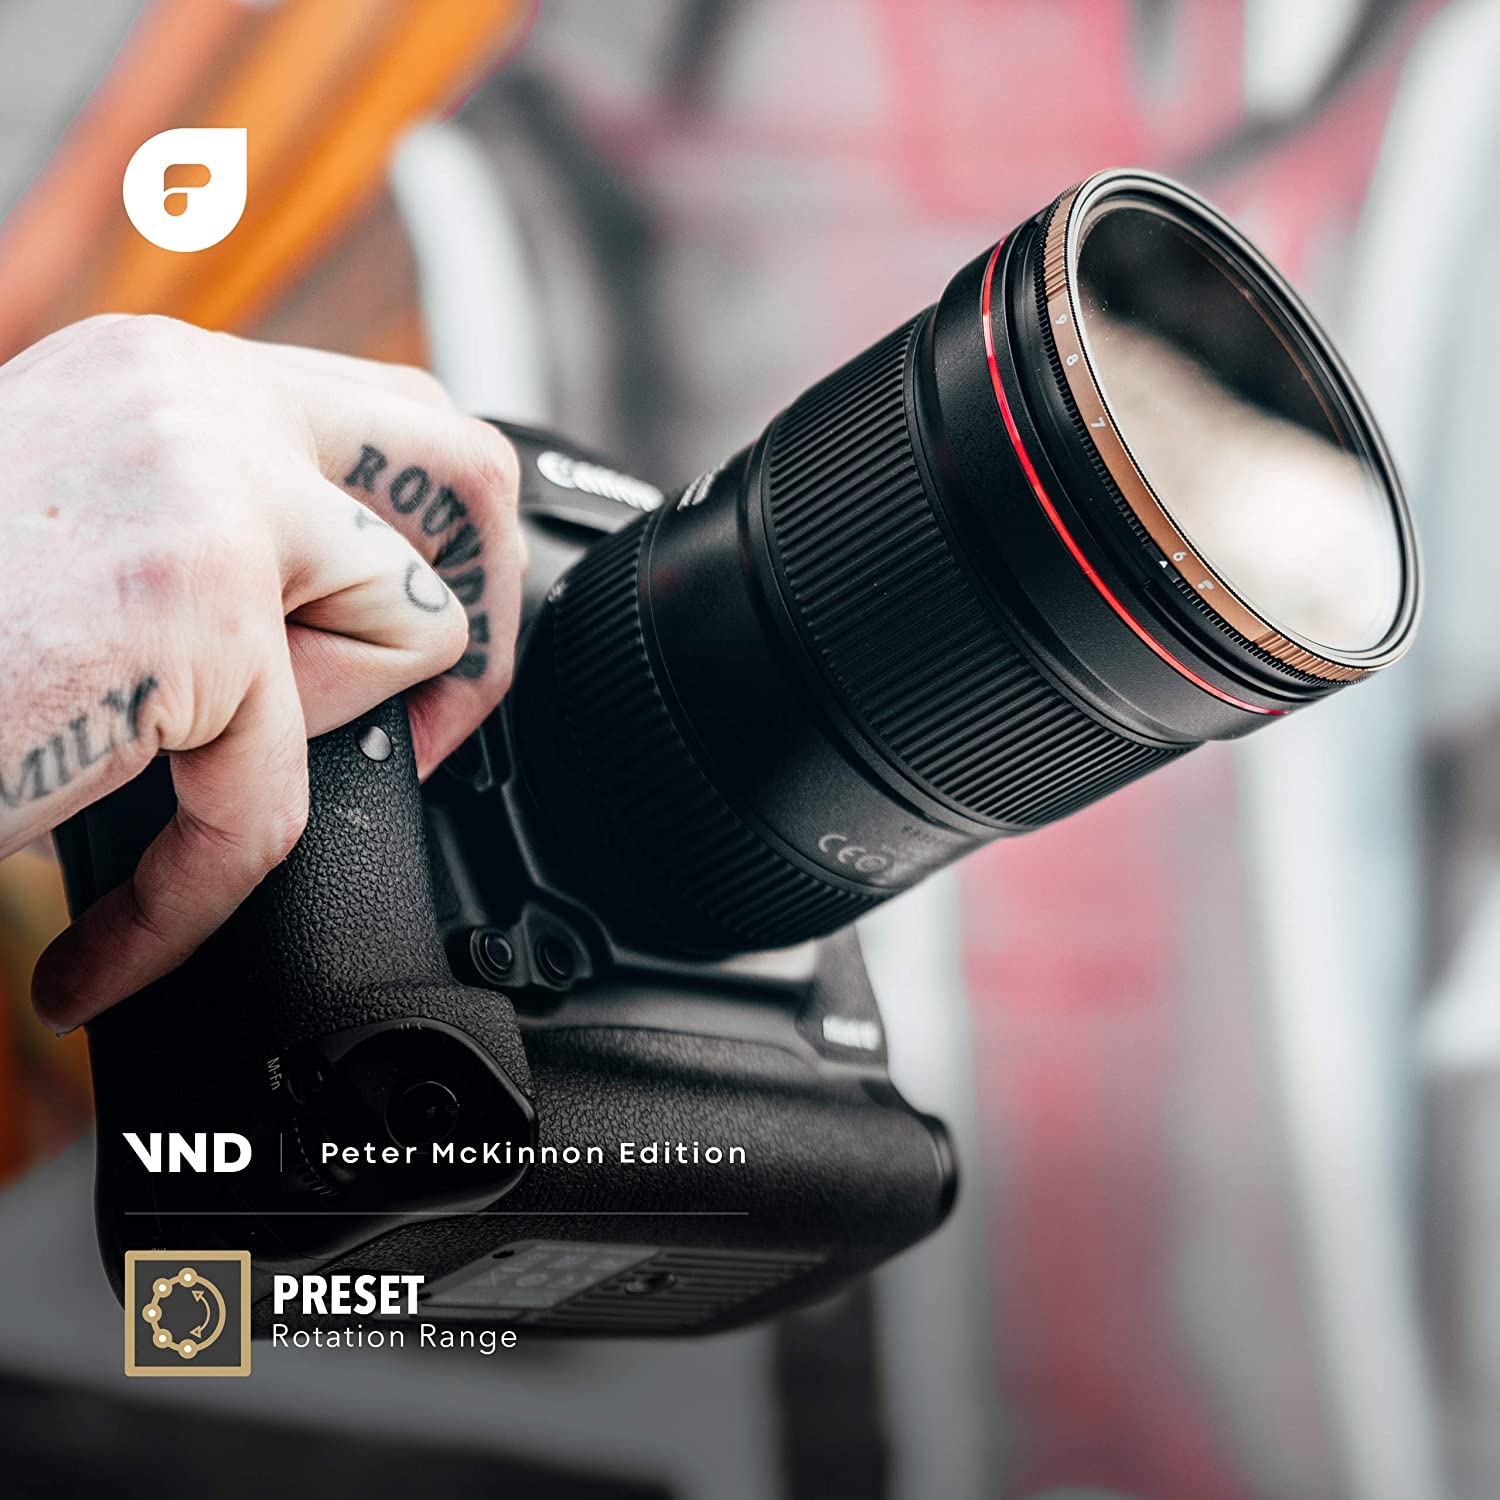 6 to 9 Stop PolarPro 67mm Variable ND Filter Peter McKinnon Edition